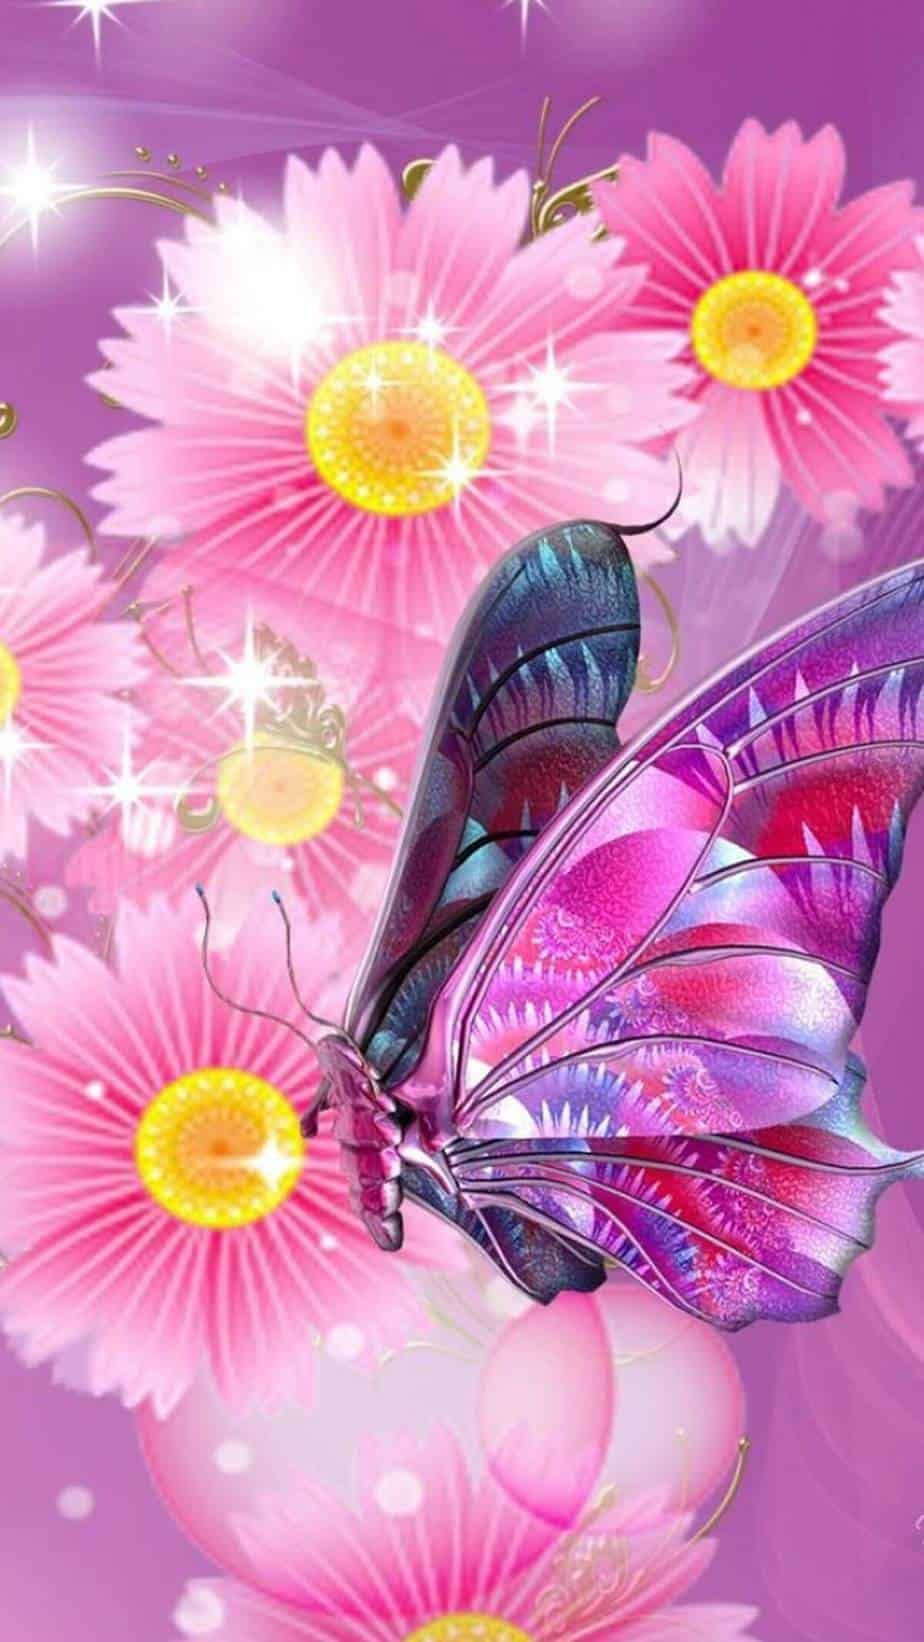 cute butterfly wallpapers iphone.